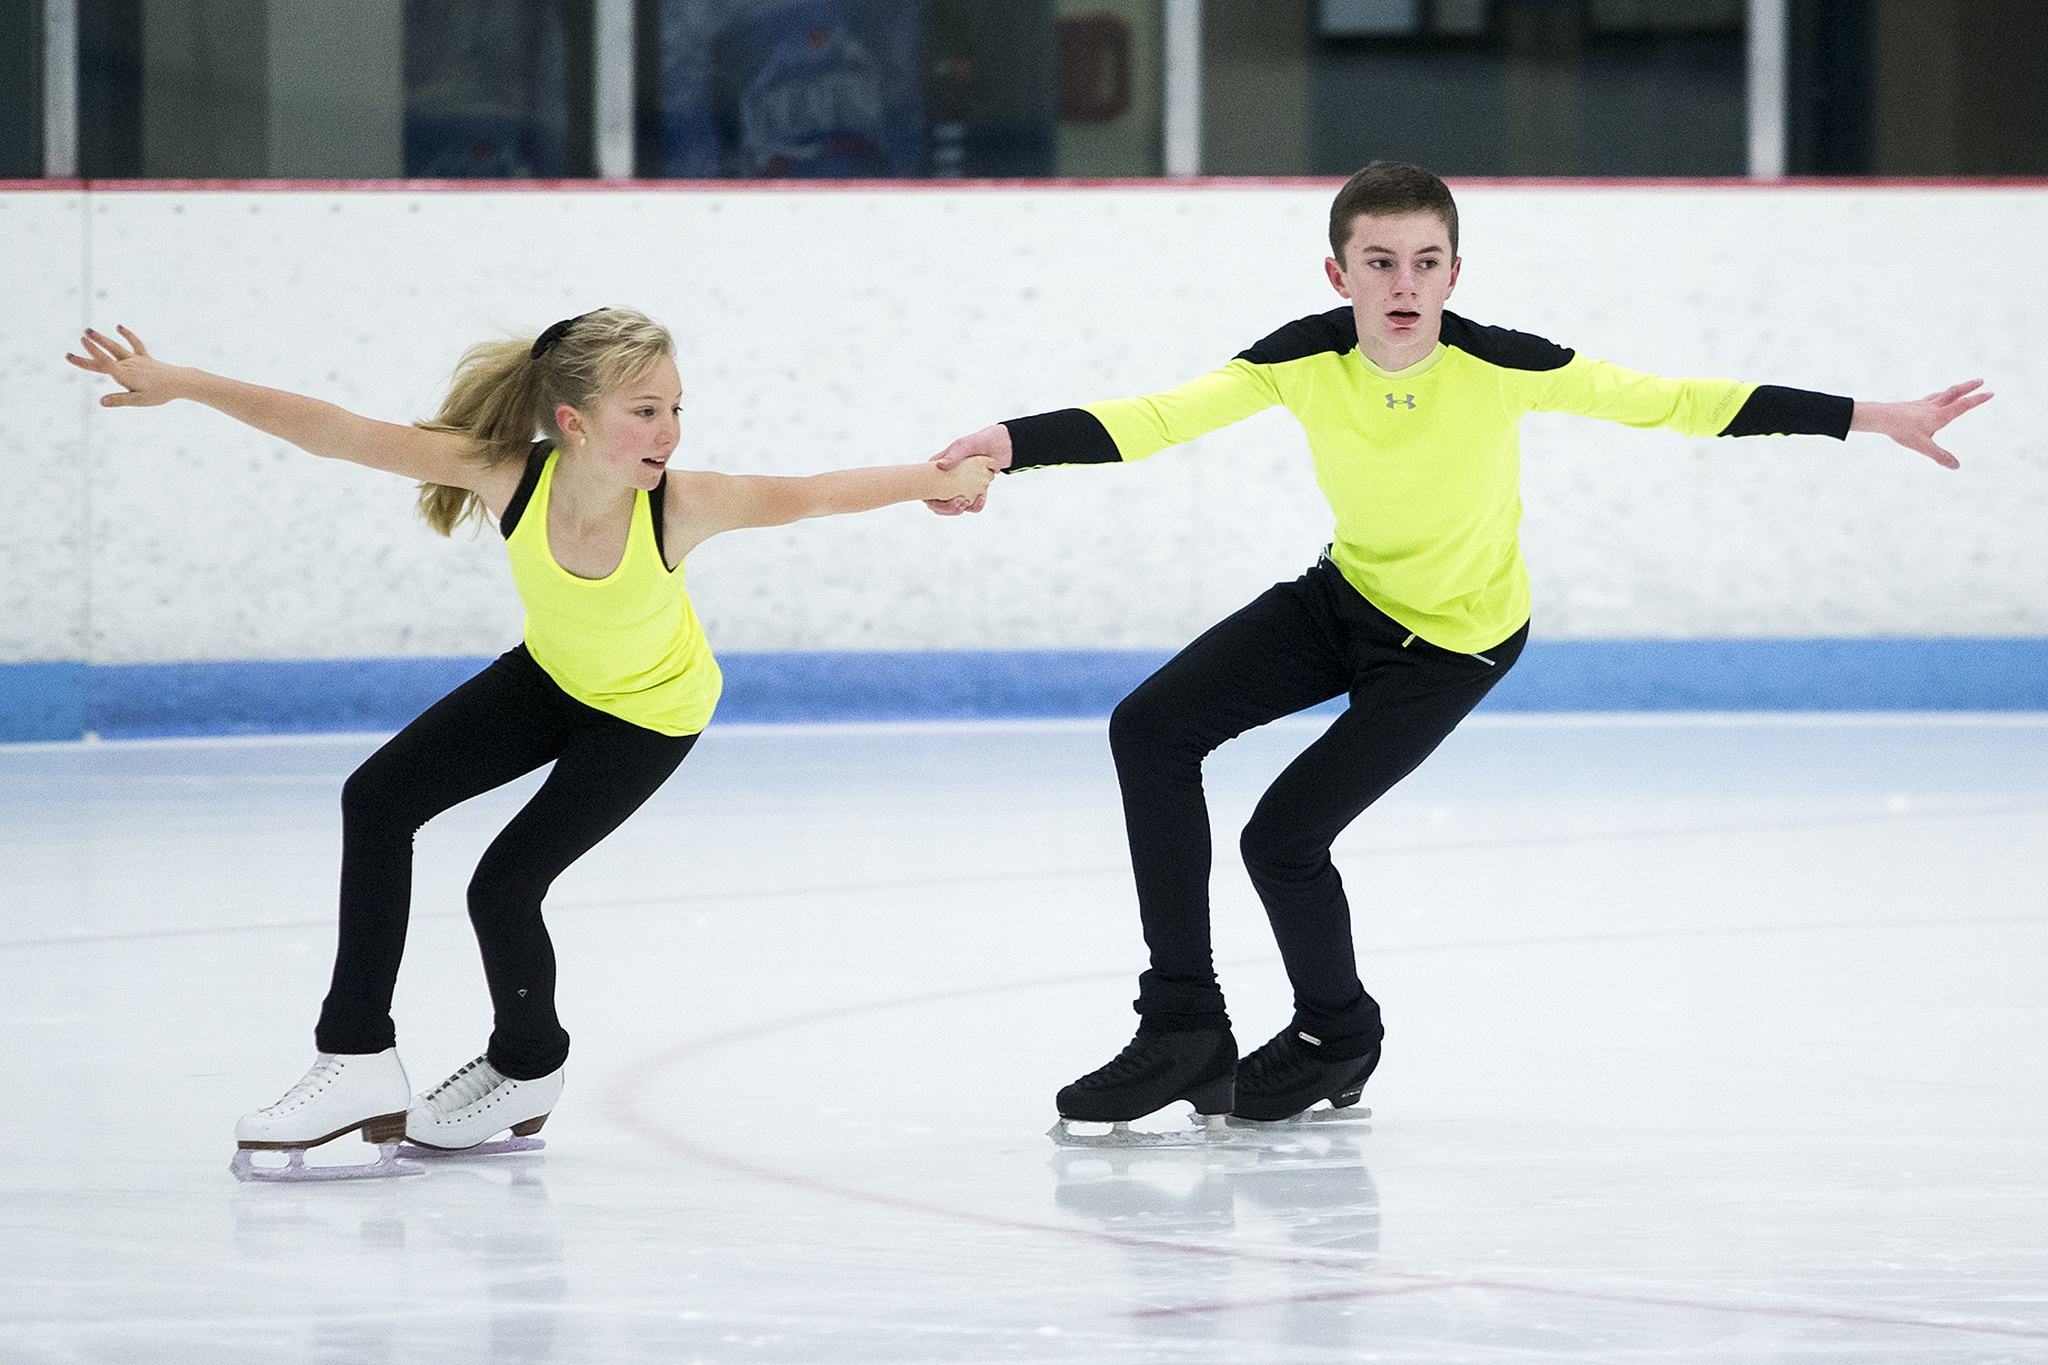 Snohomish siblings qualify for national skating championships ...